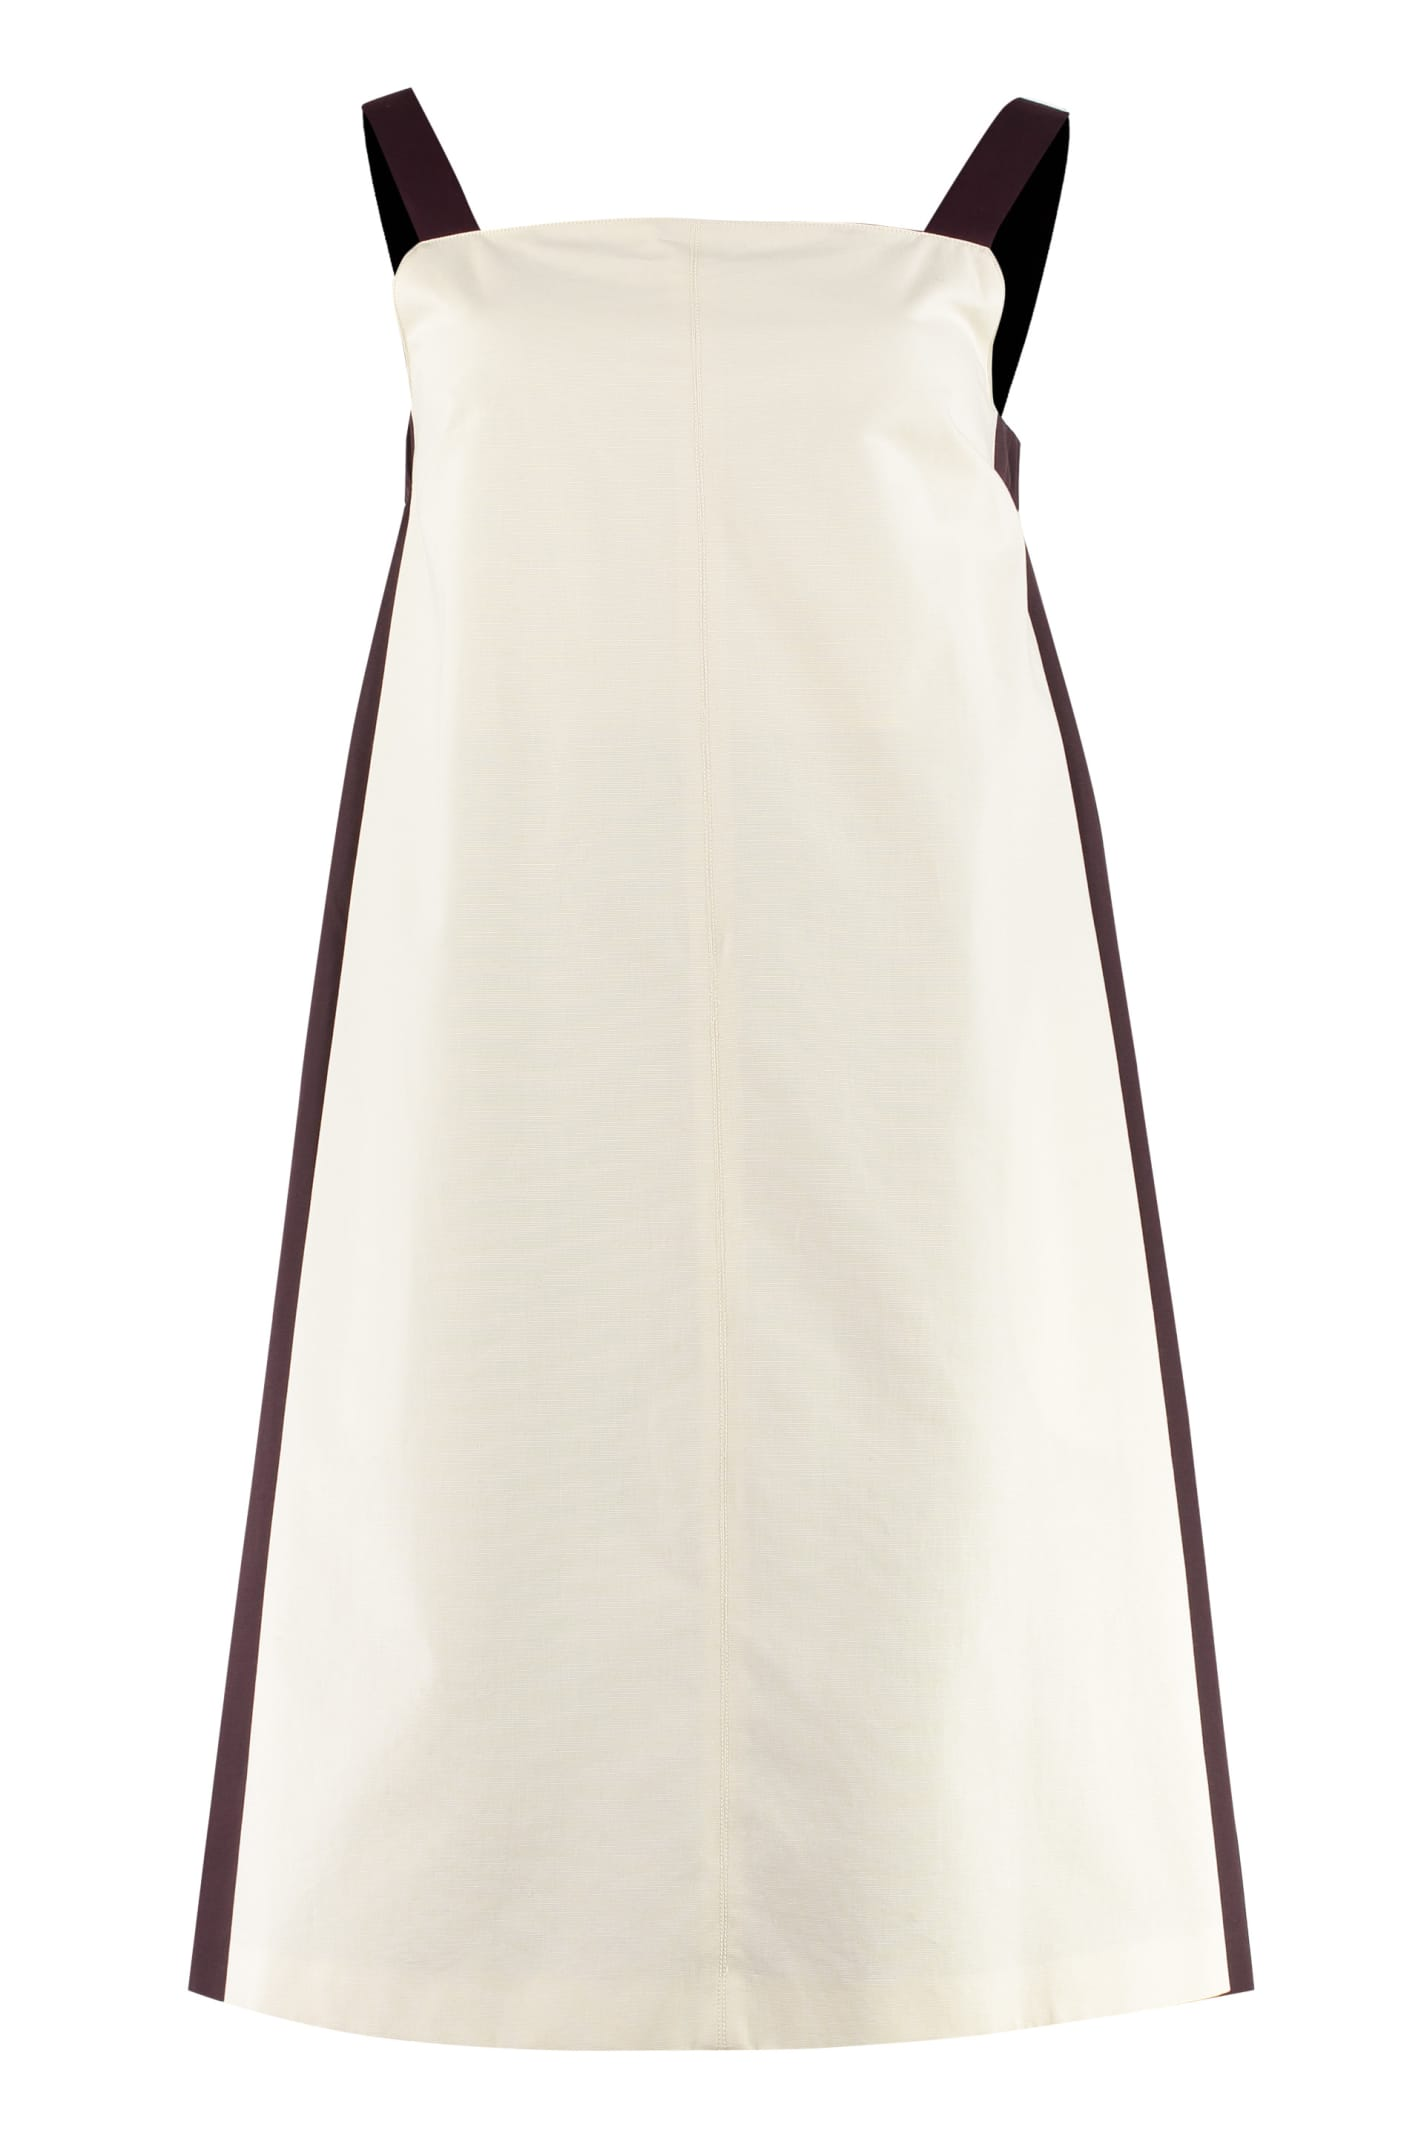 Weekend Max Mara Canoa Bicolor Cotton Dress